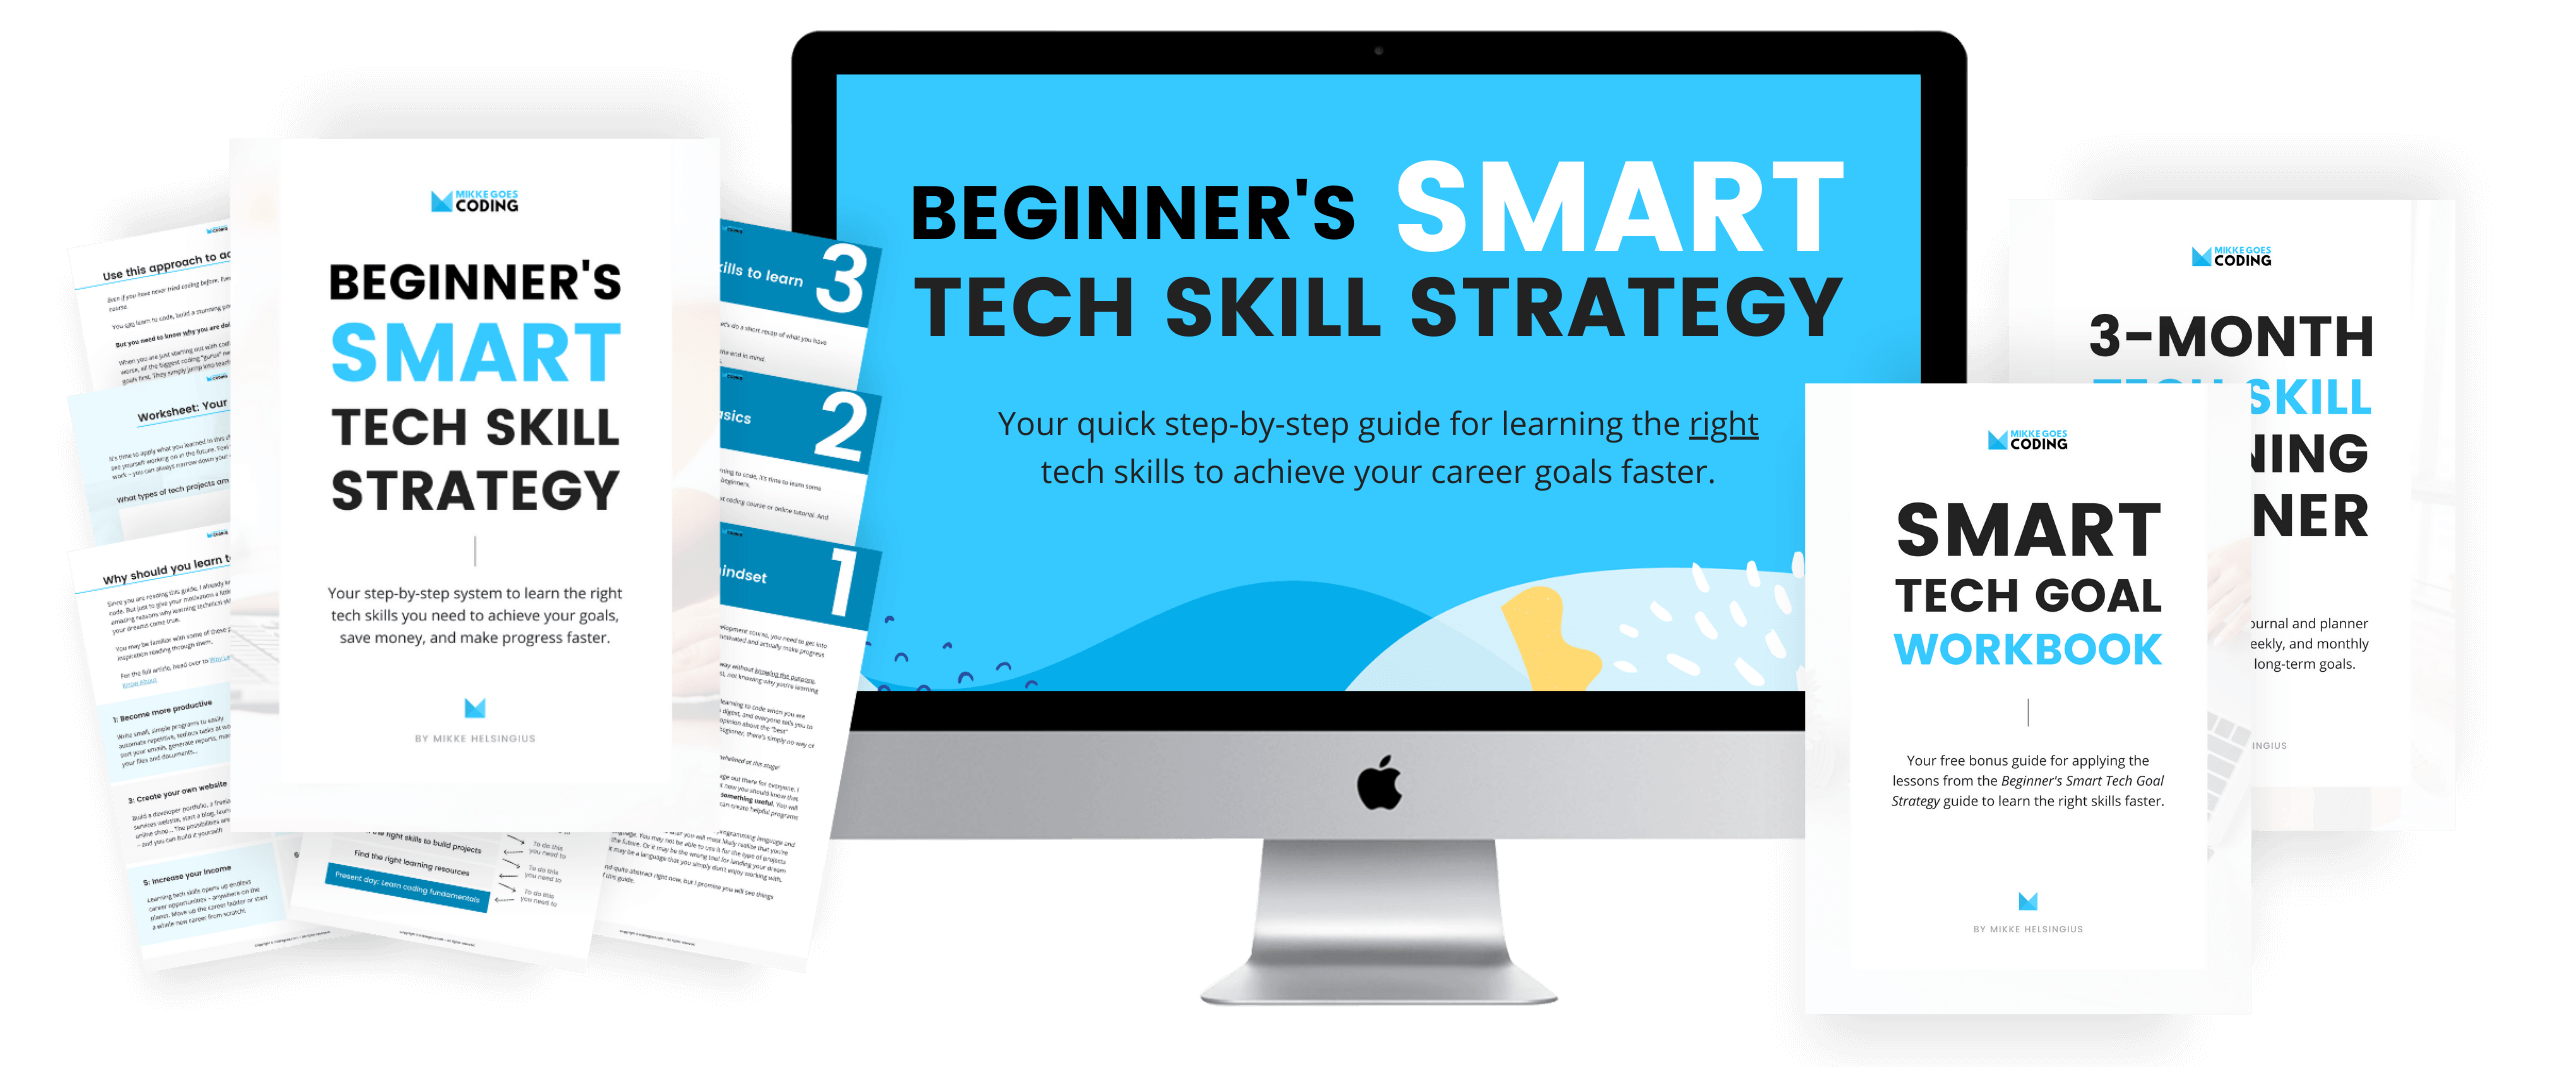 Learn coding and web development faster - Beginners Smart Tech Skill Strategy Guide 02 - MikkeGoes